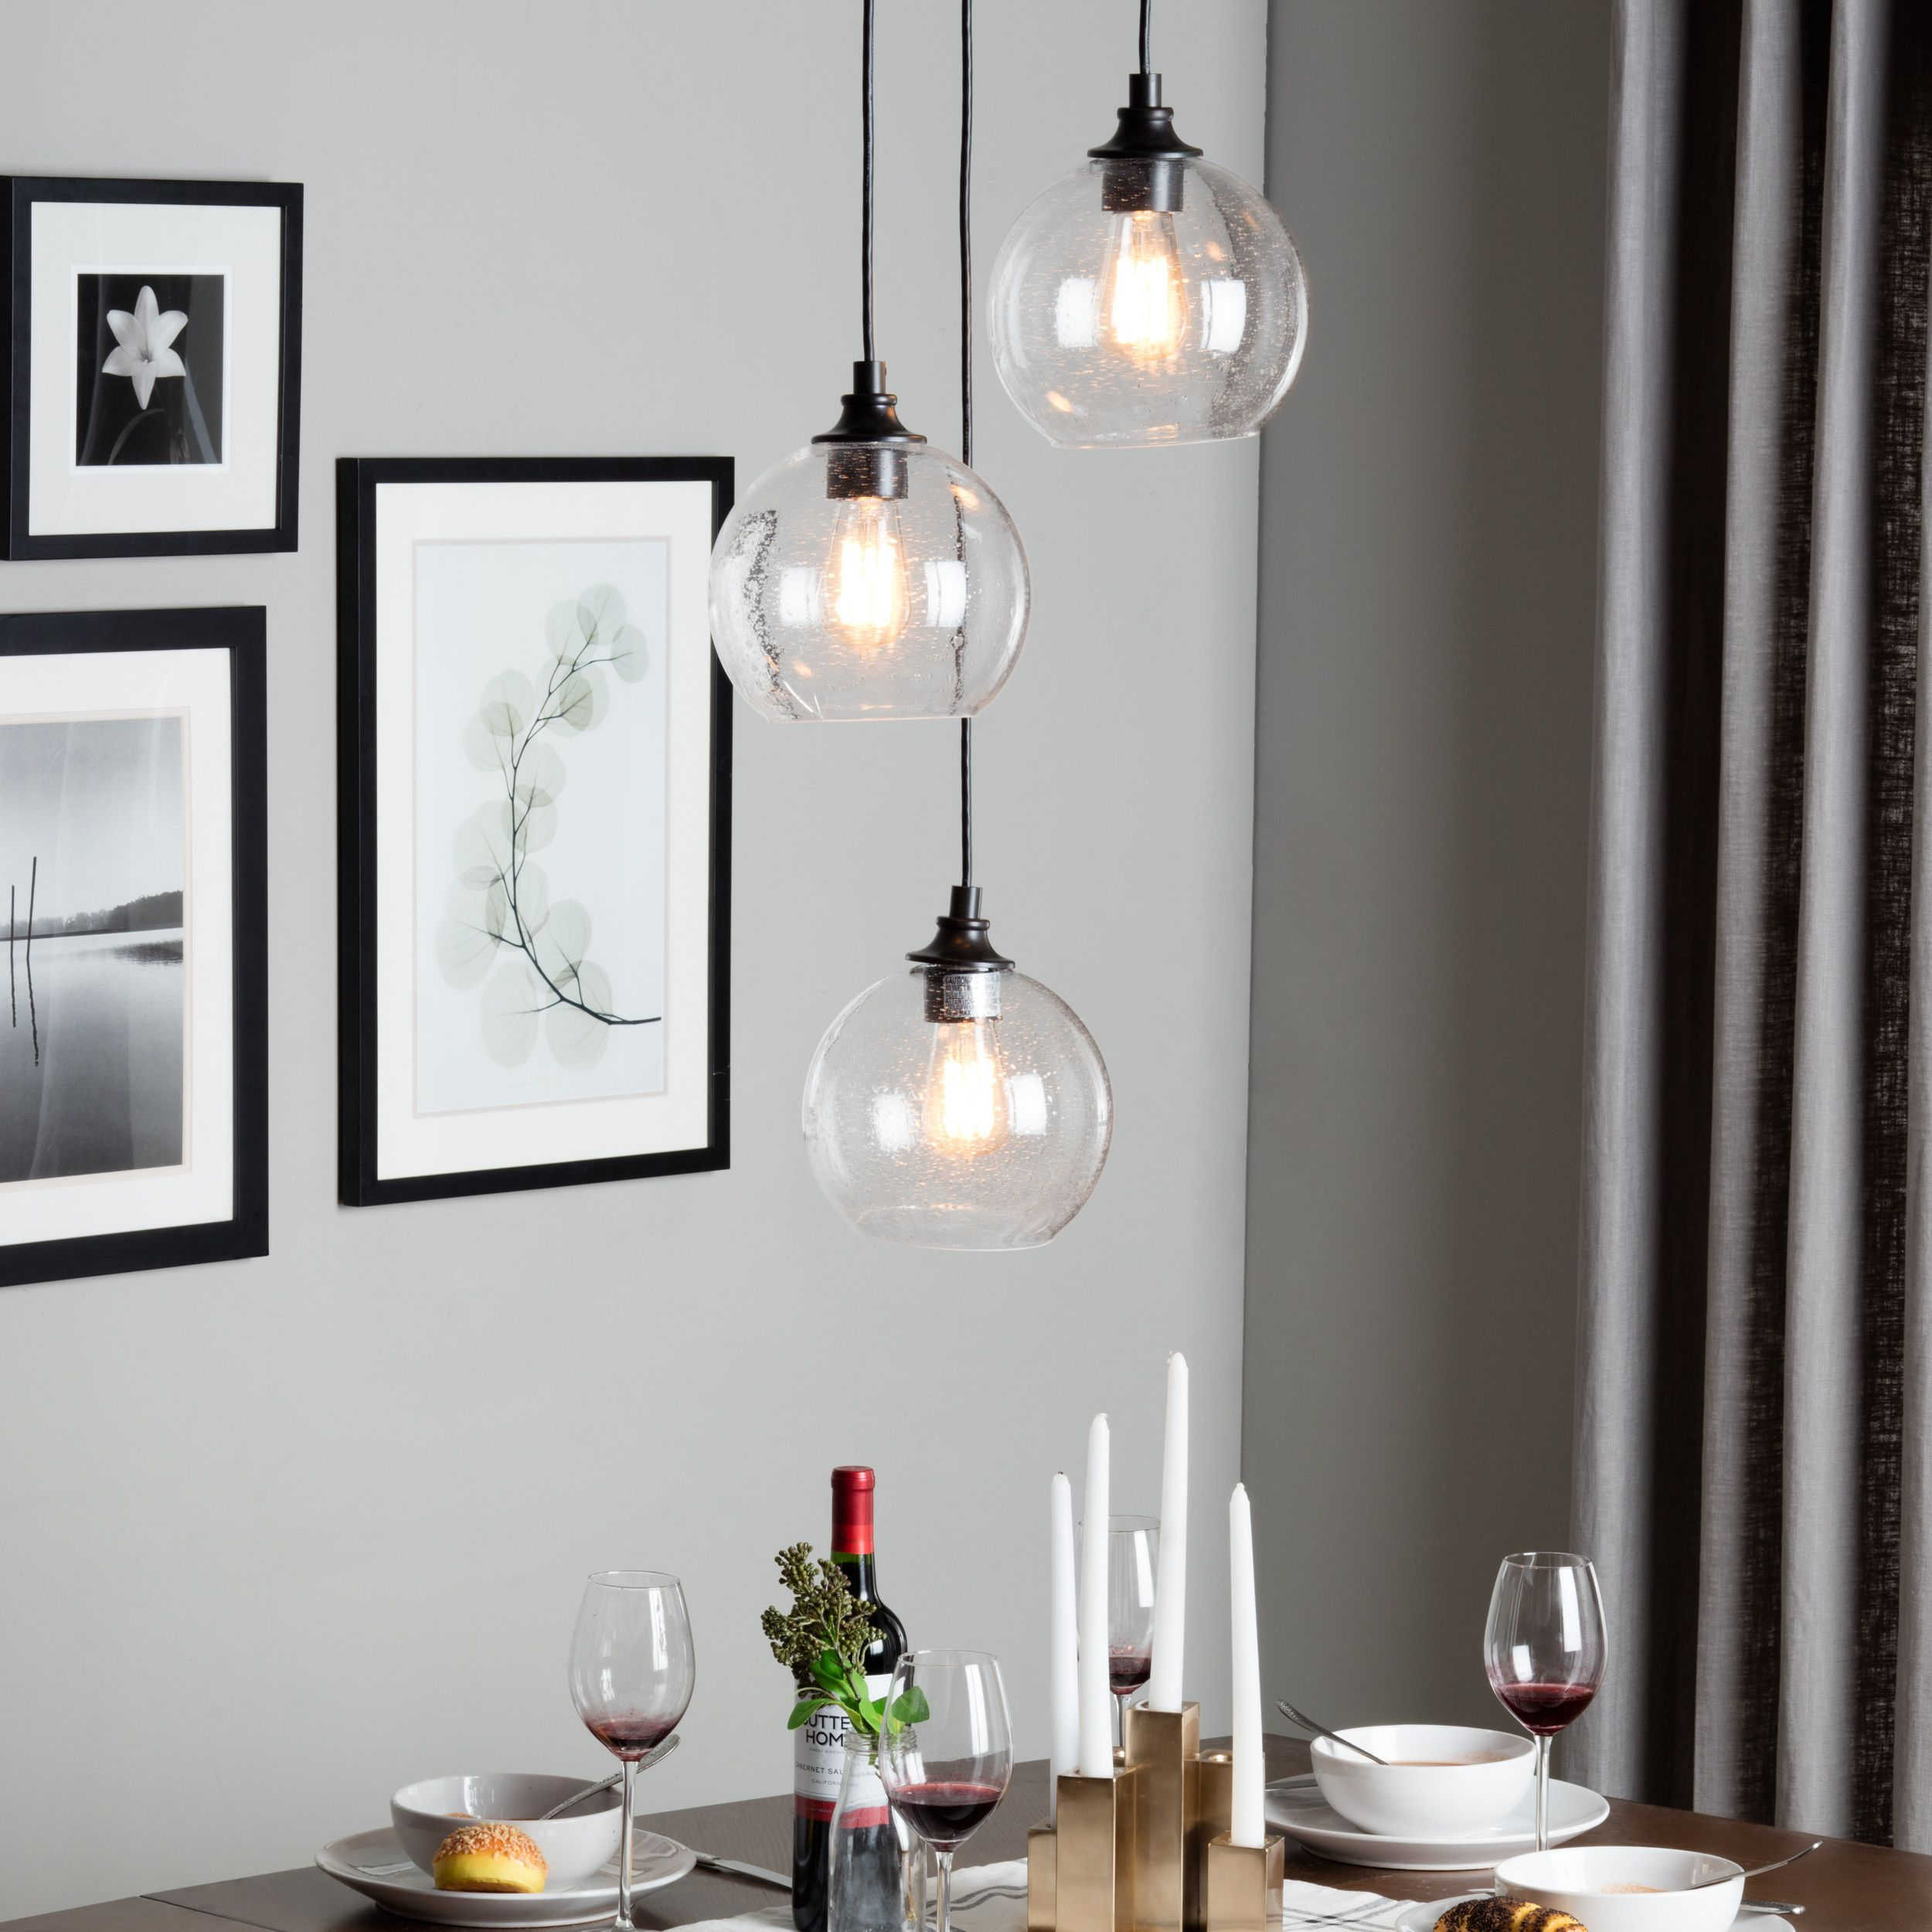 Pendant Lighting For Dining Room   Suspended From The Ceilings In Such A  Beautiful Way Using Chains Or Rods, The Pendant Lighting Brings Light To  Where ...